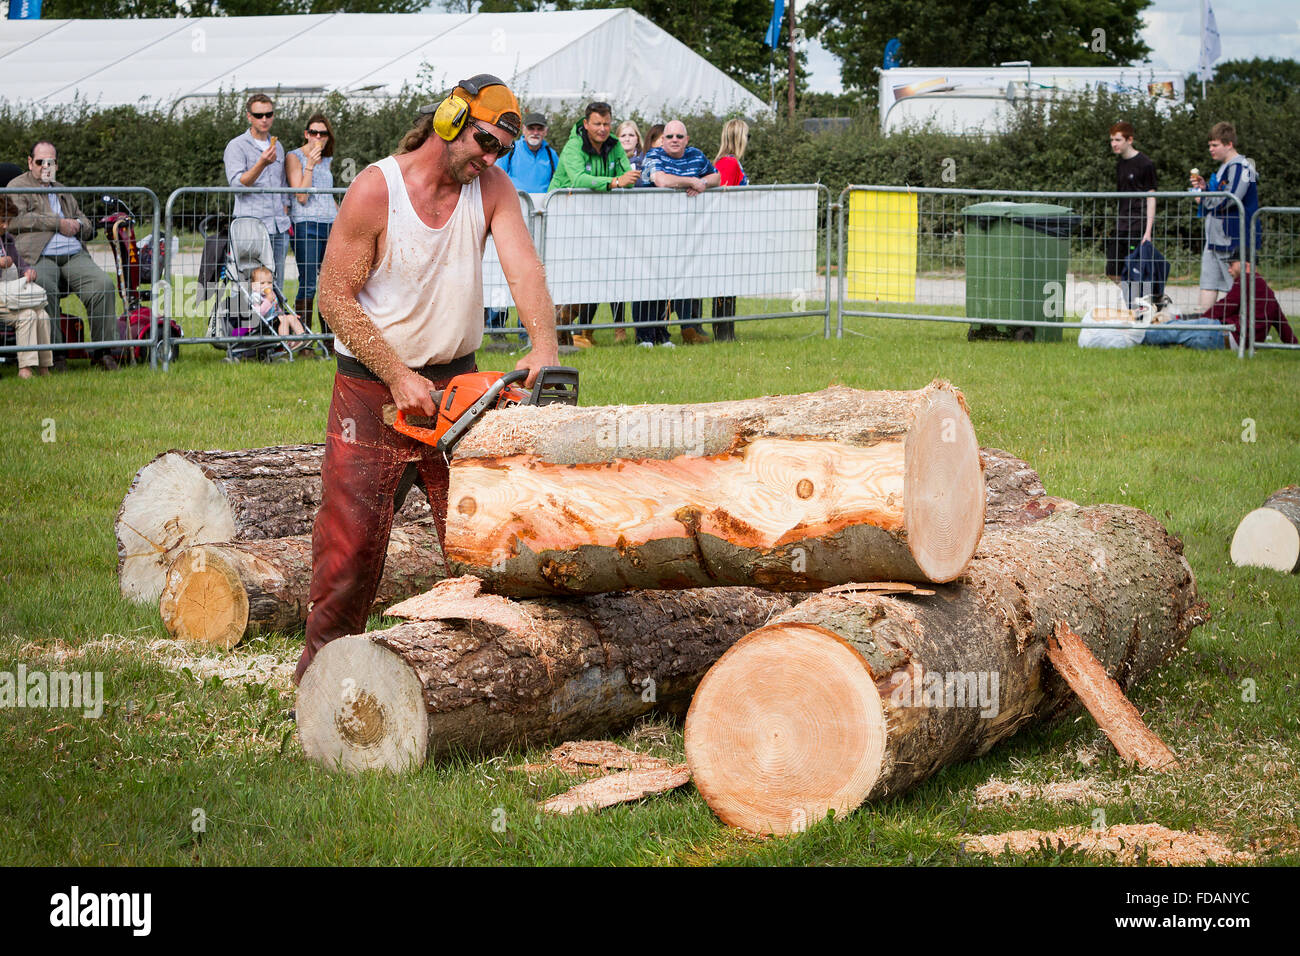 Chainsaw ppe stock photos images alamy